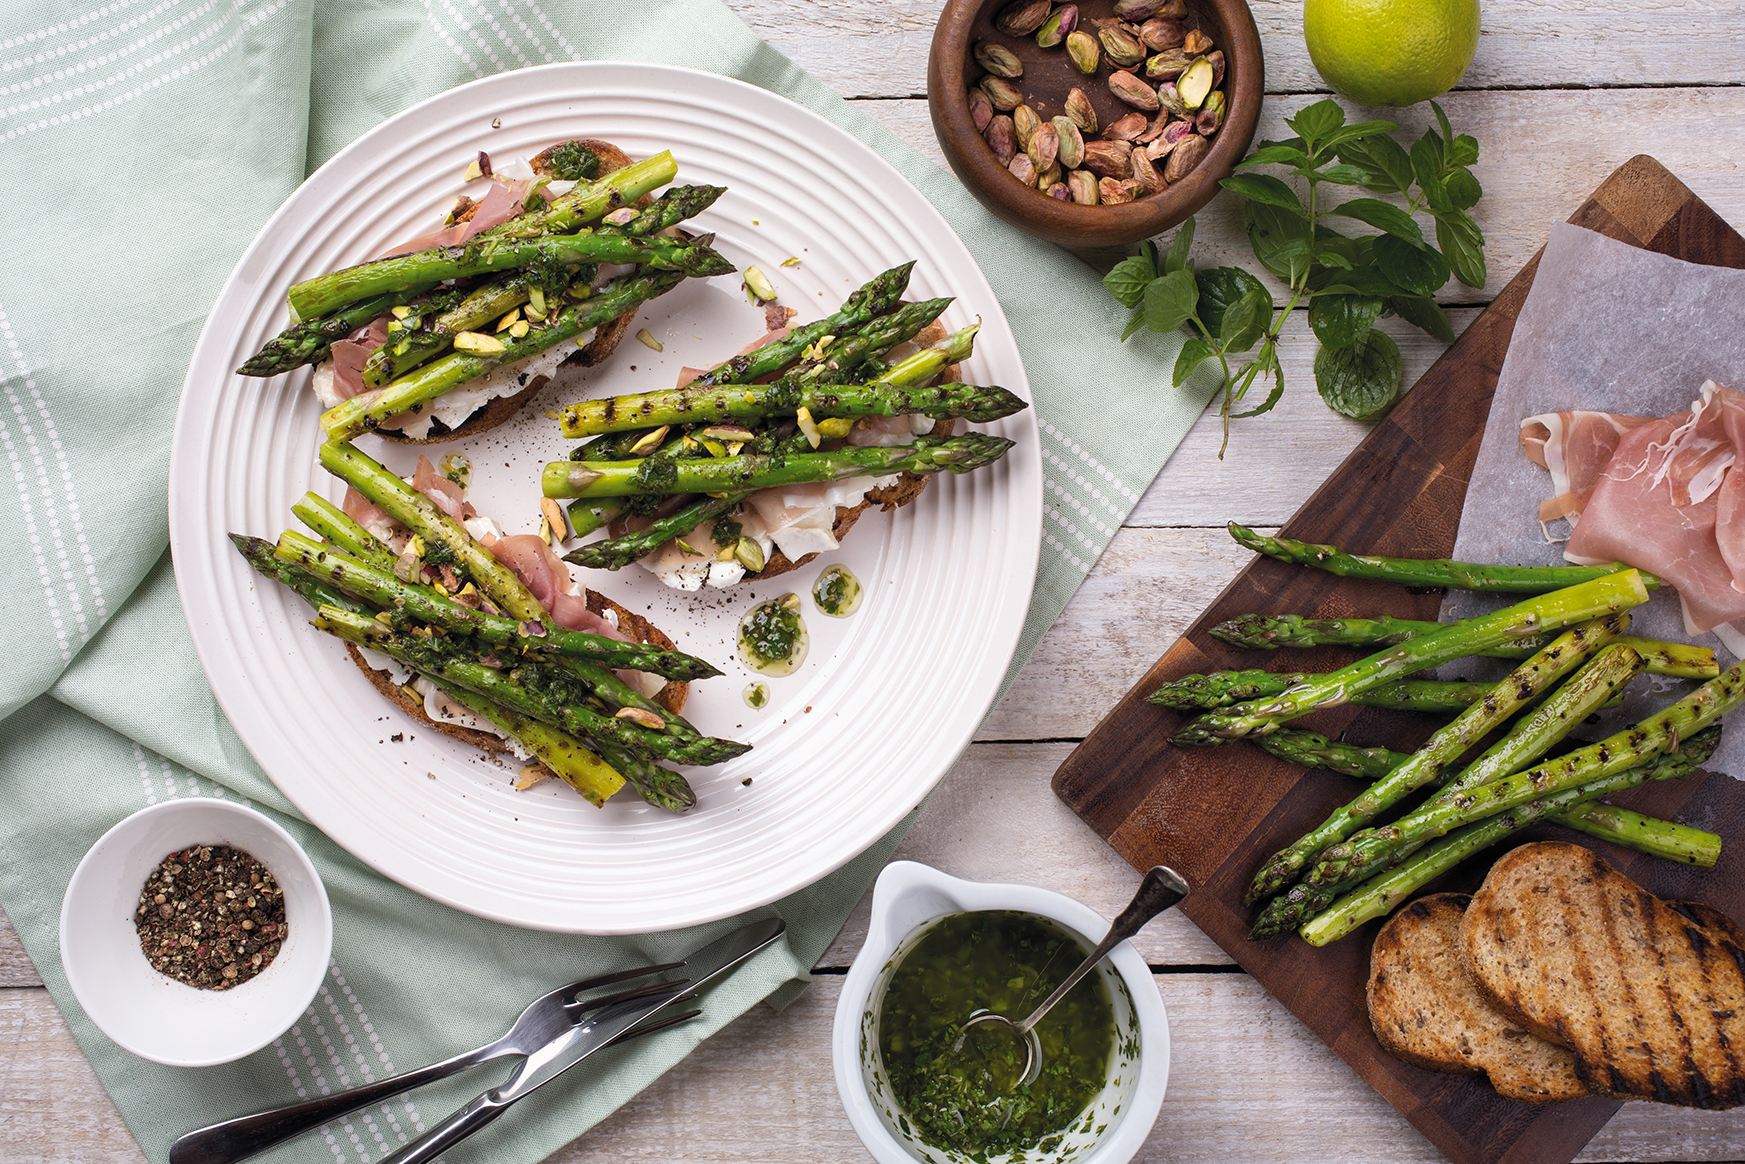 Rye toast sandwich with asparagus